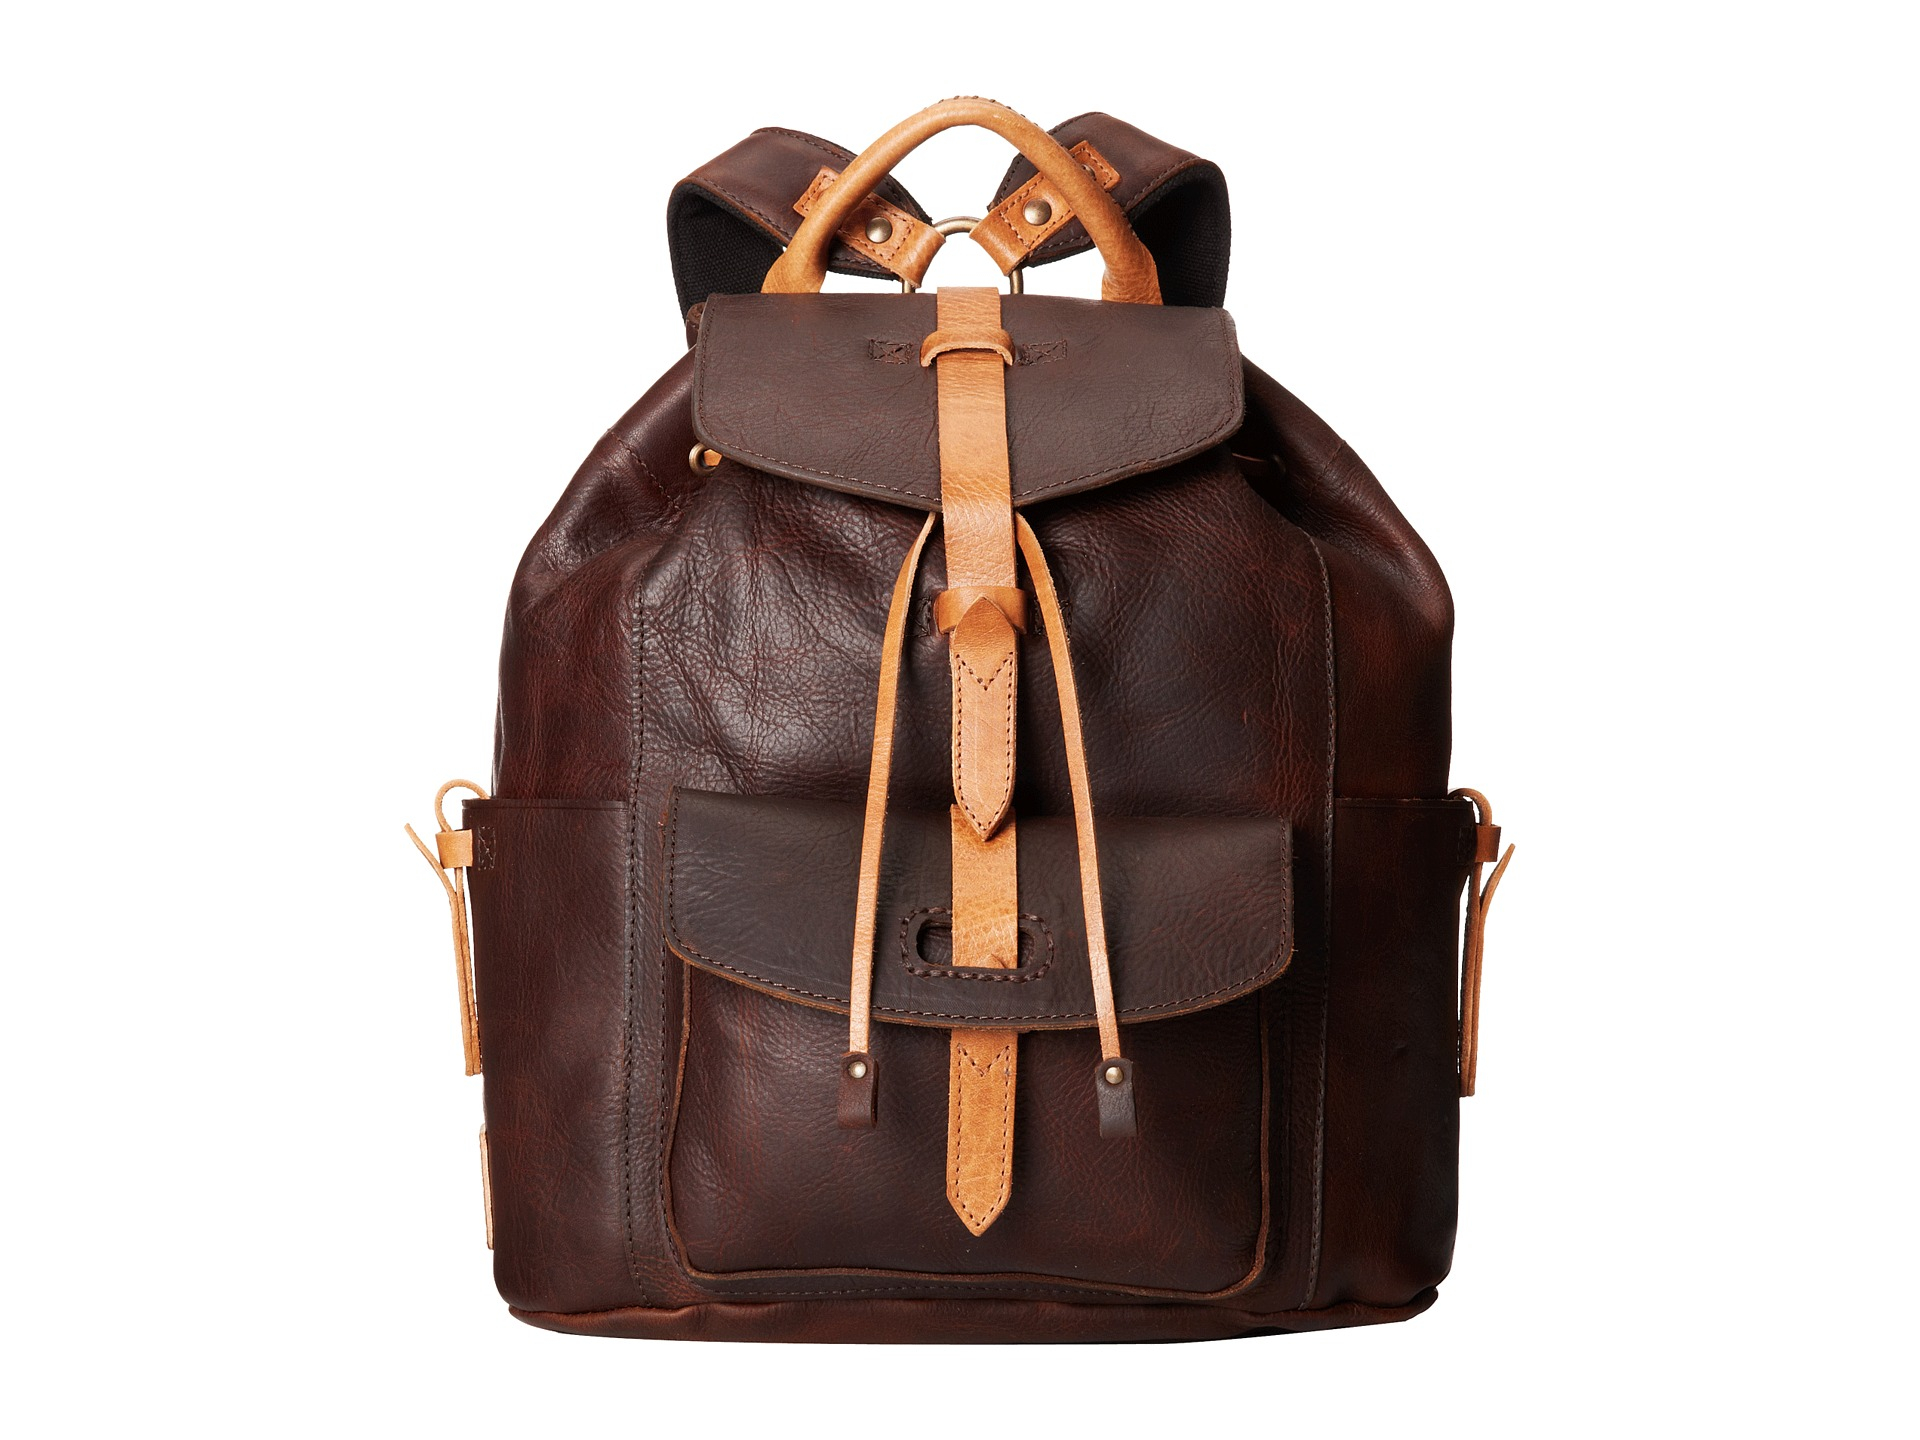 Lyst - Will Leather Goods Rainier Backpack in Brown 1c9c83c18